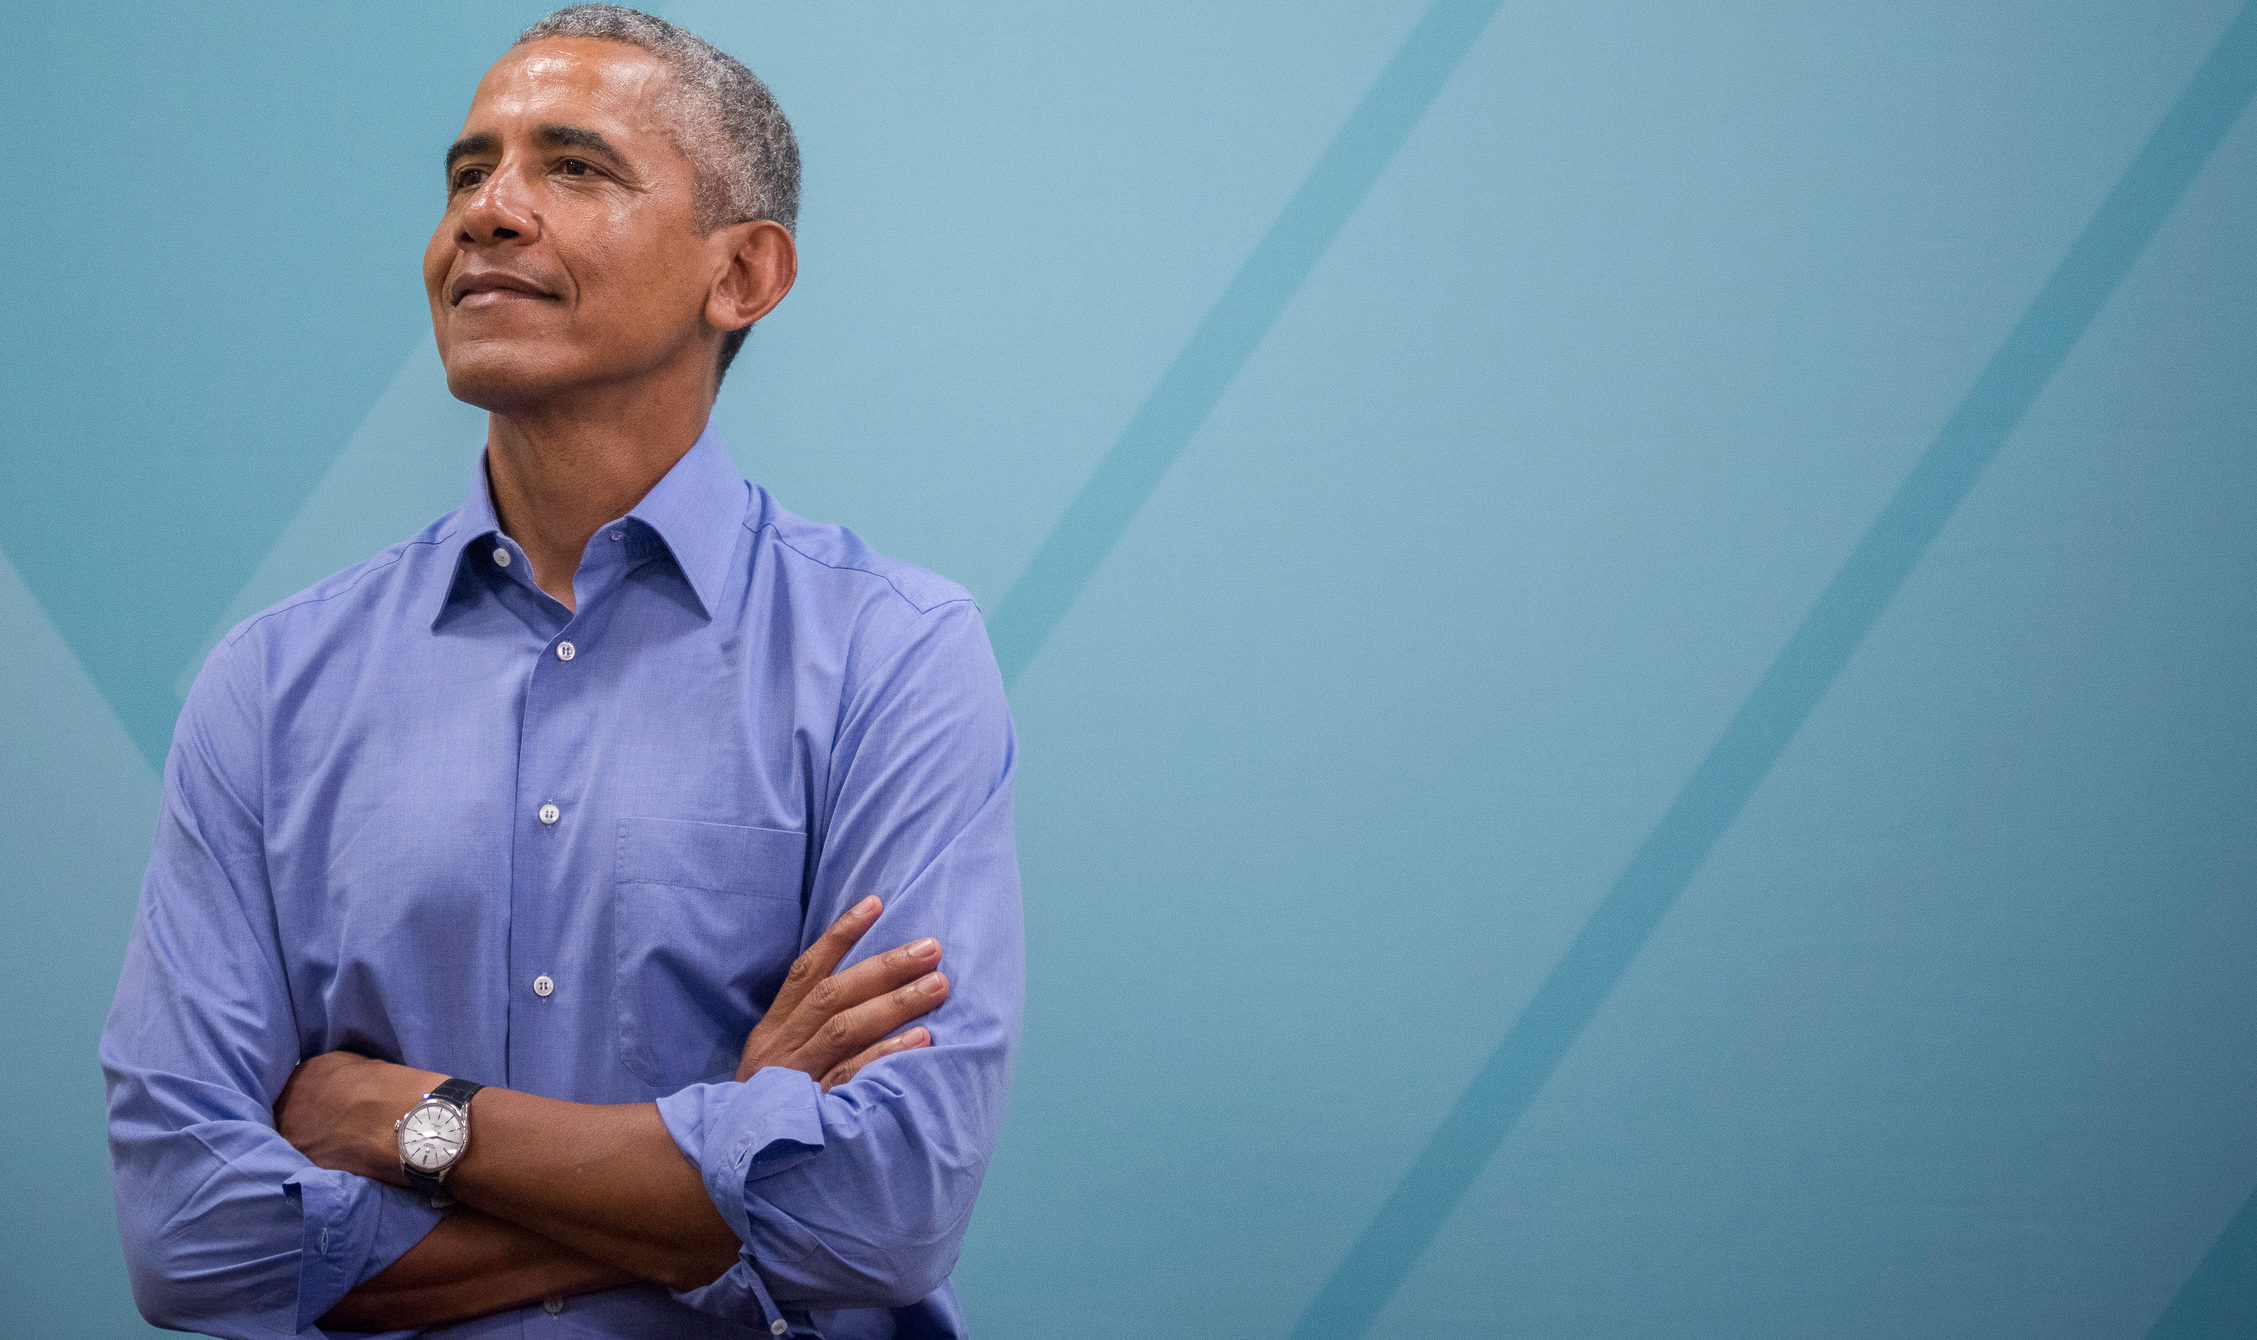 Barack Obama Posing with Arms Crossed